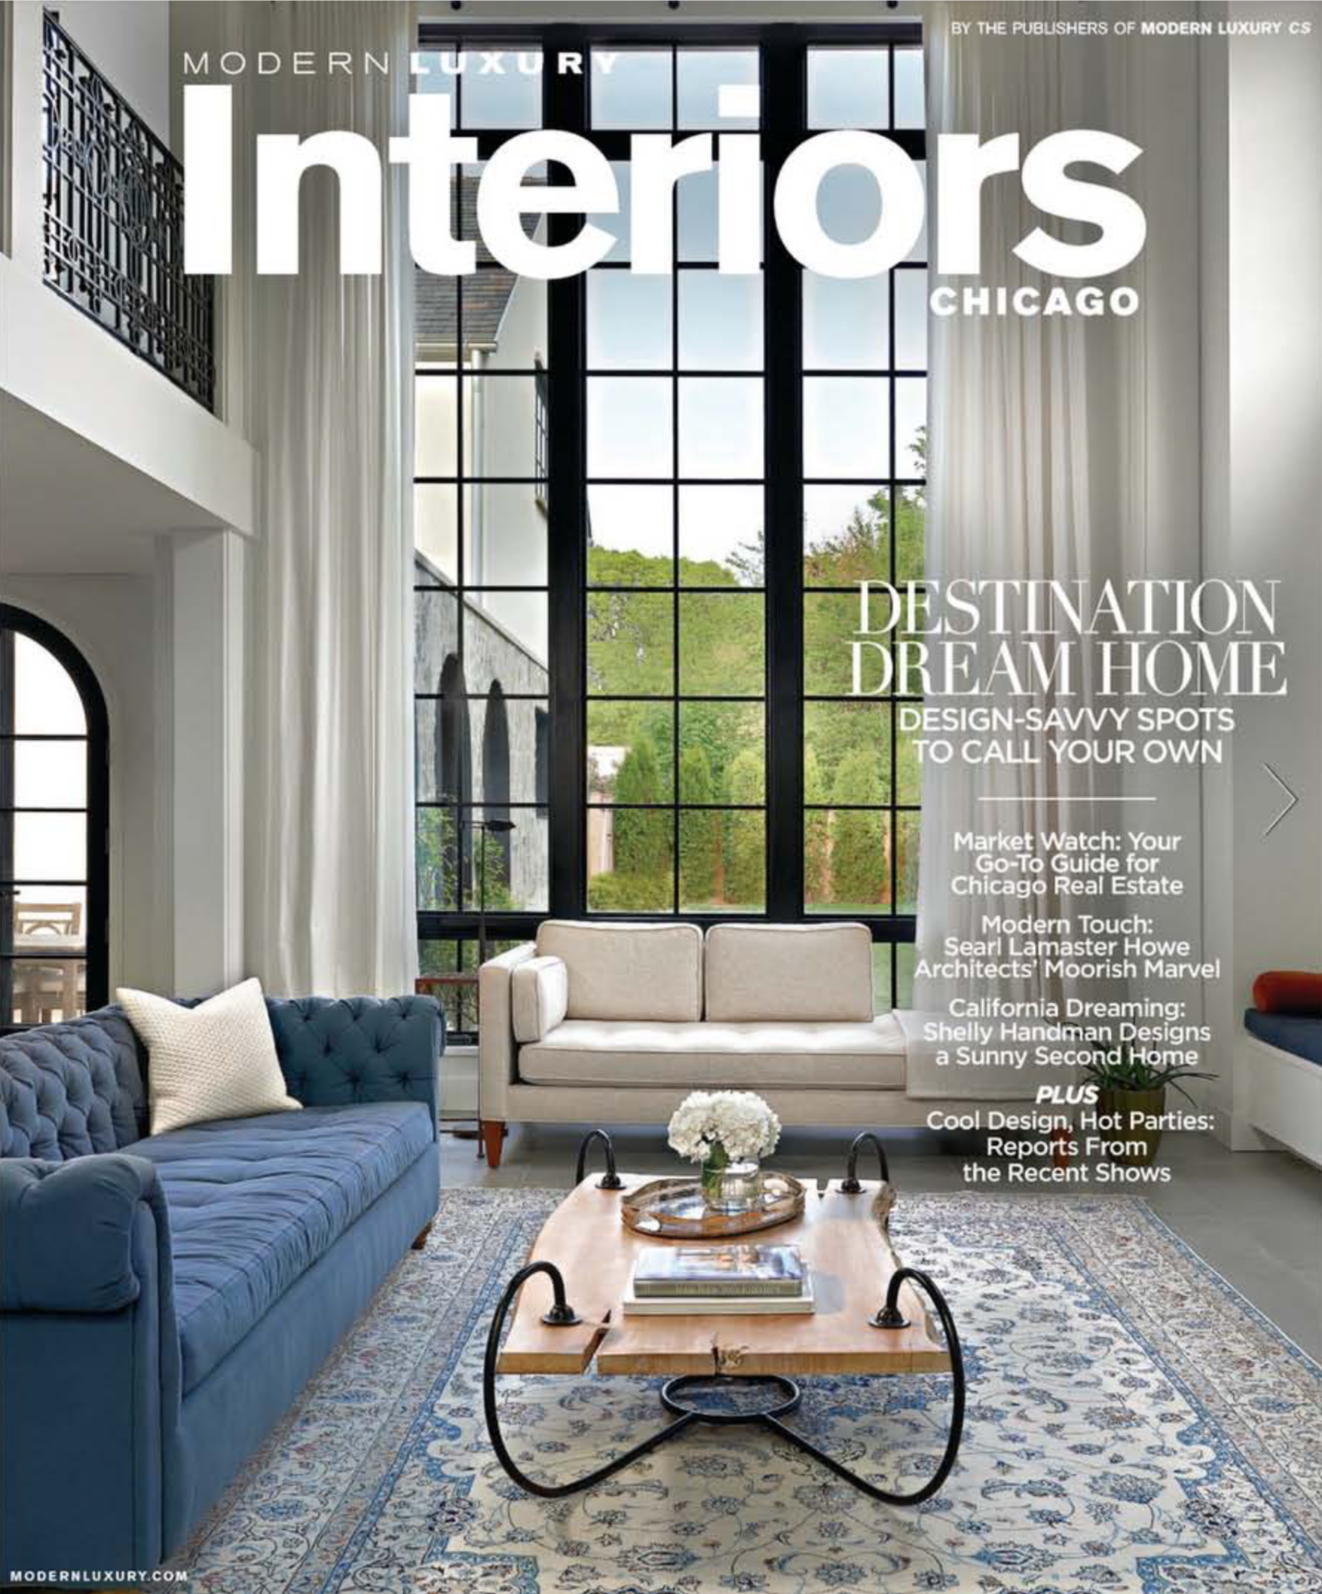 Interiors July 2015.png